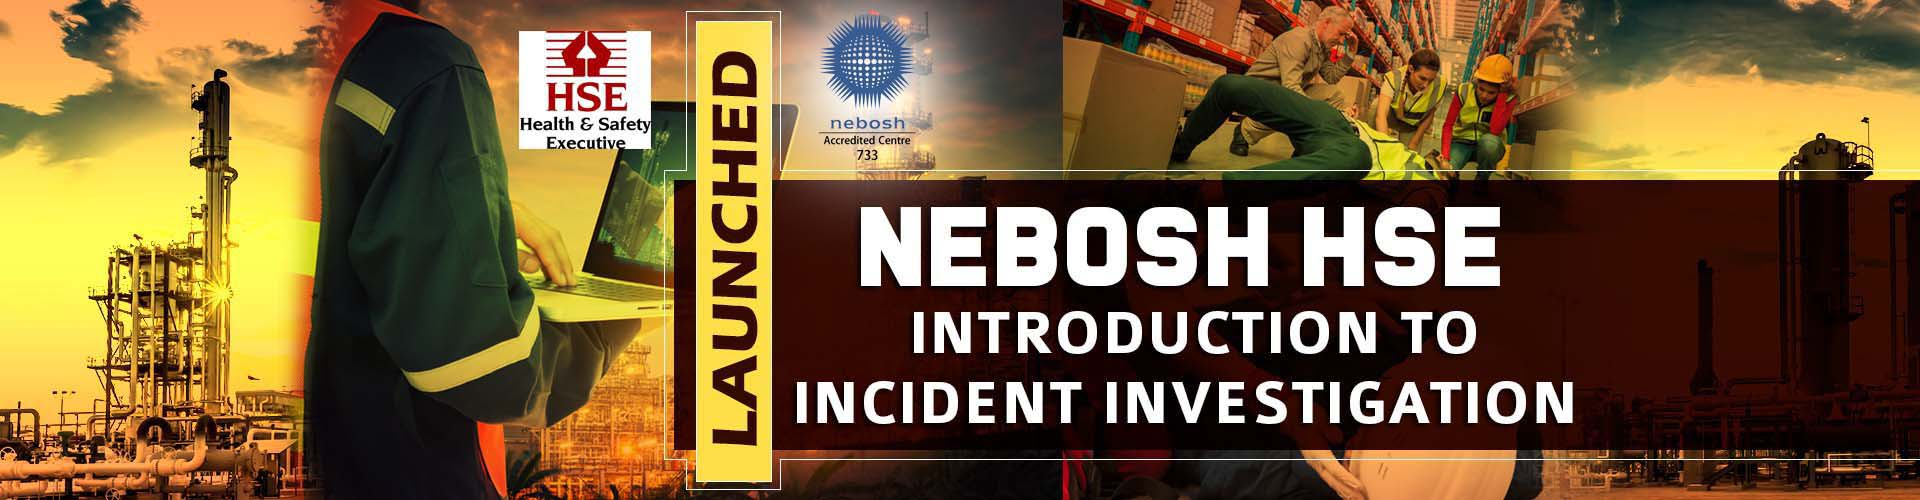 NEBOSH_HSE_Accident_Investigation_Banner_Coin